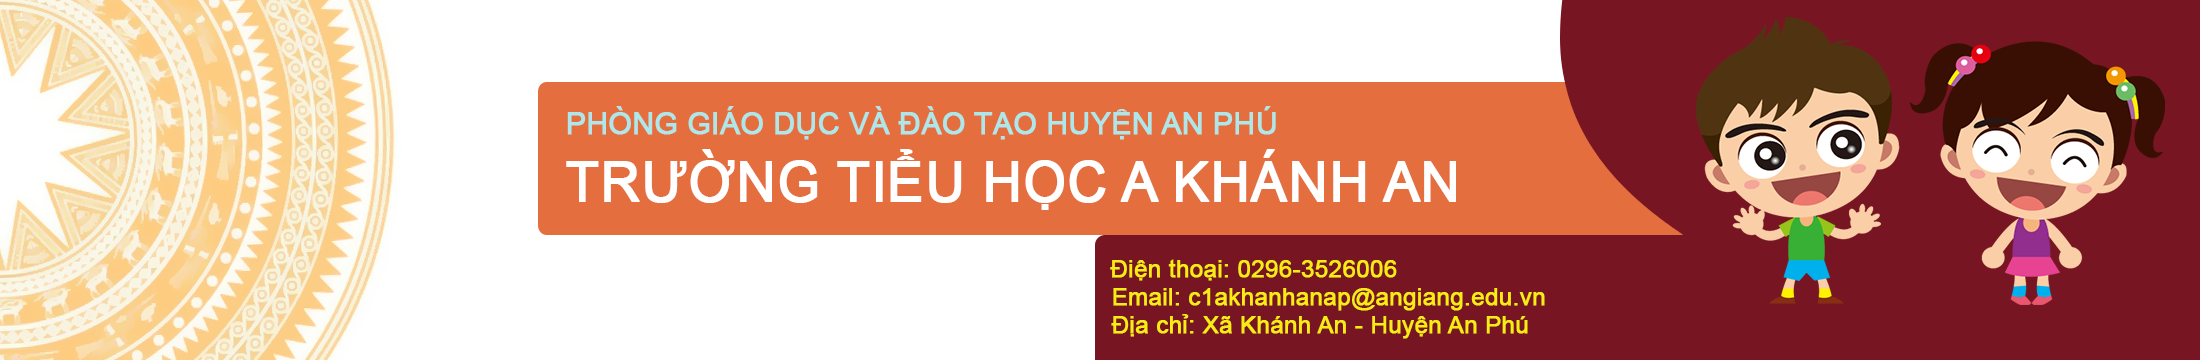 TH_A_KHANH_AN